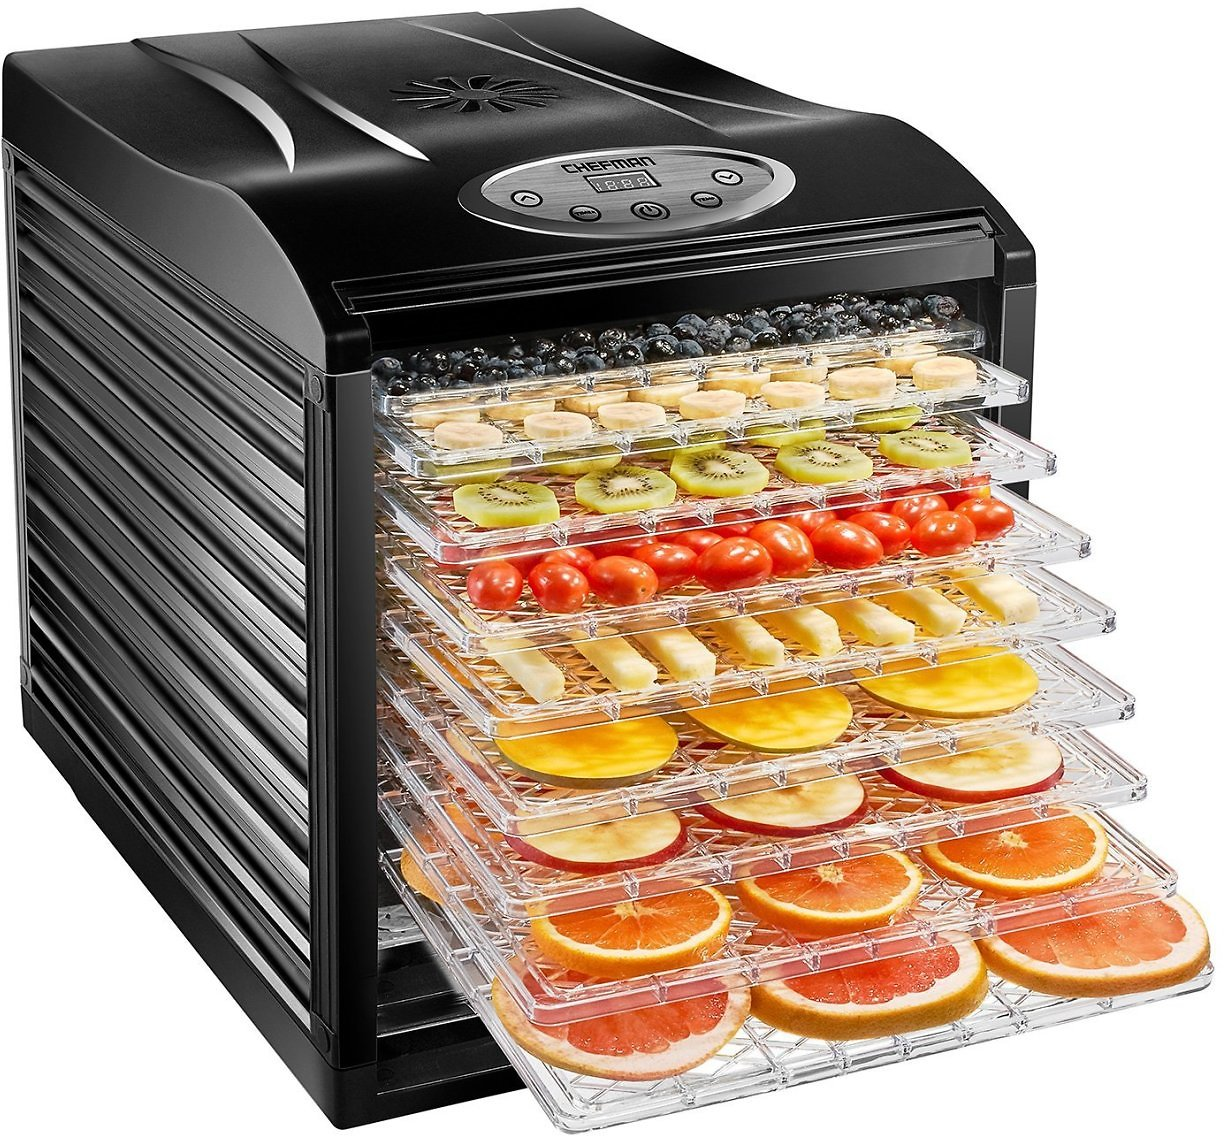 Chefman 9-Tray Food Dehydrator Machine Professional Electric Multi-Tier Food Preserver, Dried Meat or Beef Jerky Maker, Fruit & Vegetable Dryer with 9 Slide Out Trays & Transparent Door, Black: Kitchen & Dining